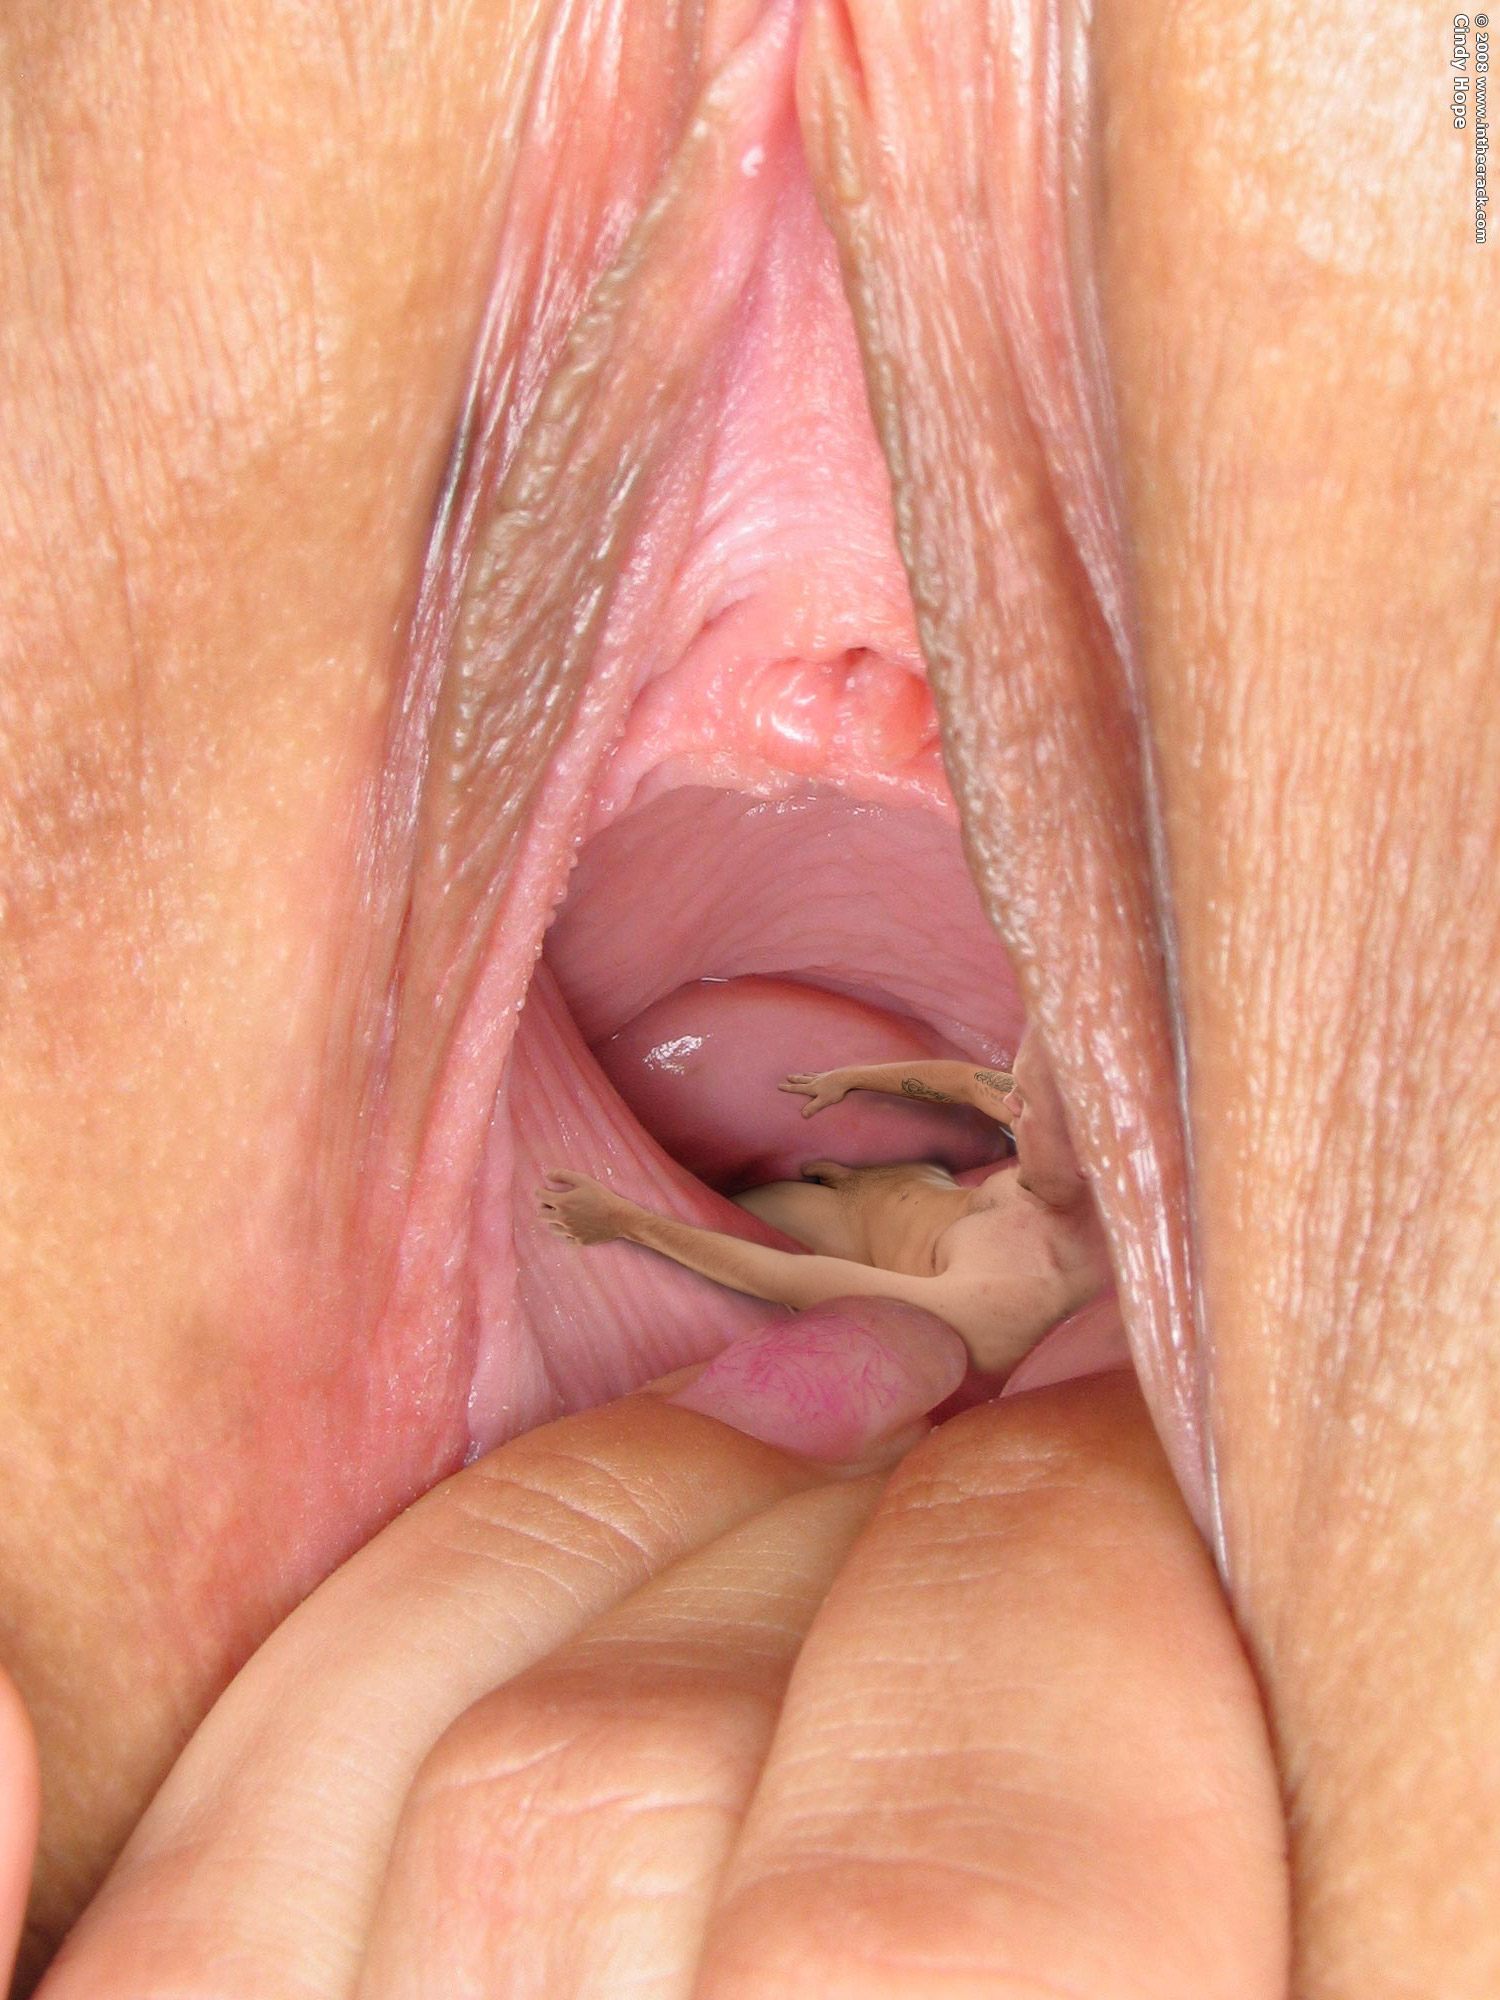 Up clitoris close extreme